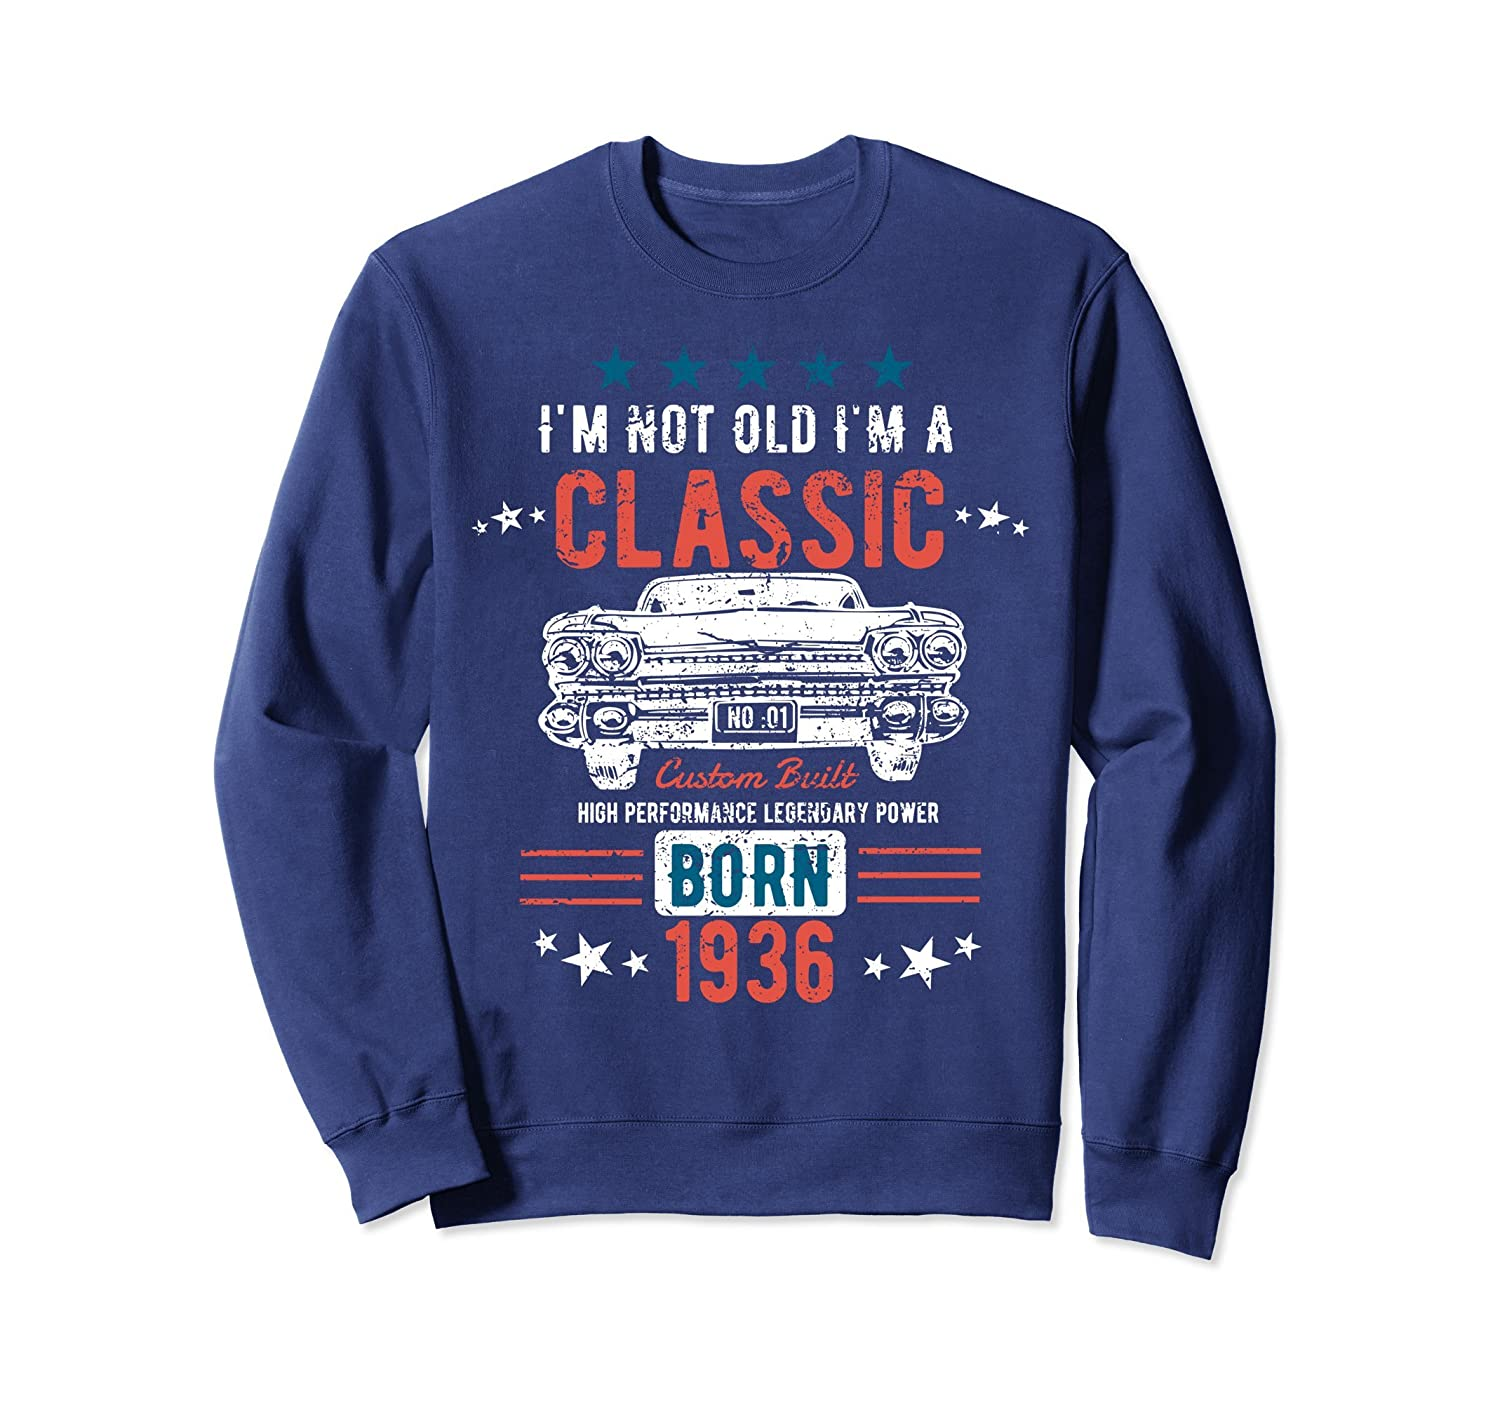 82nd Birthday Shirt   I'm Not Old I'm a Classic Born 1936-Awarplus